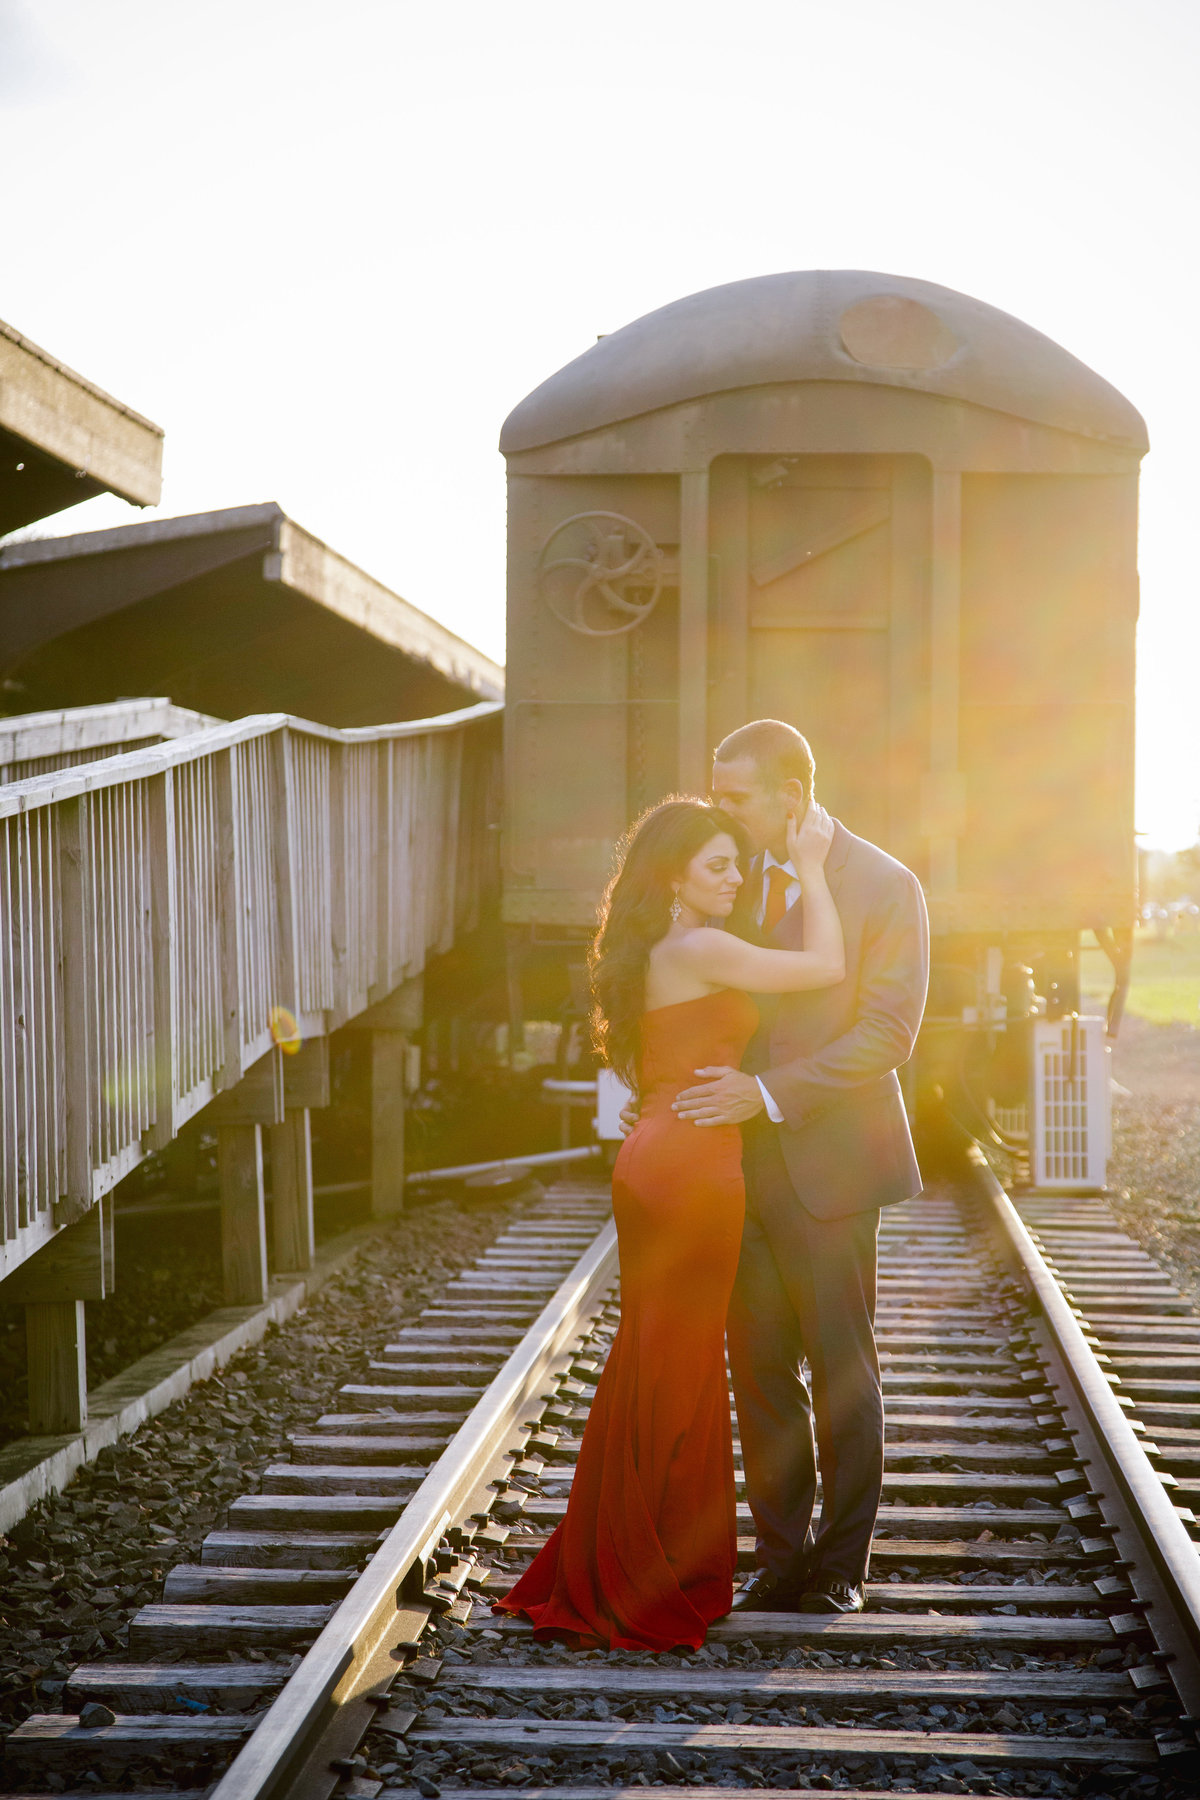 engaged couple by train at liberty state park